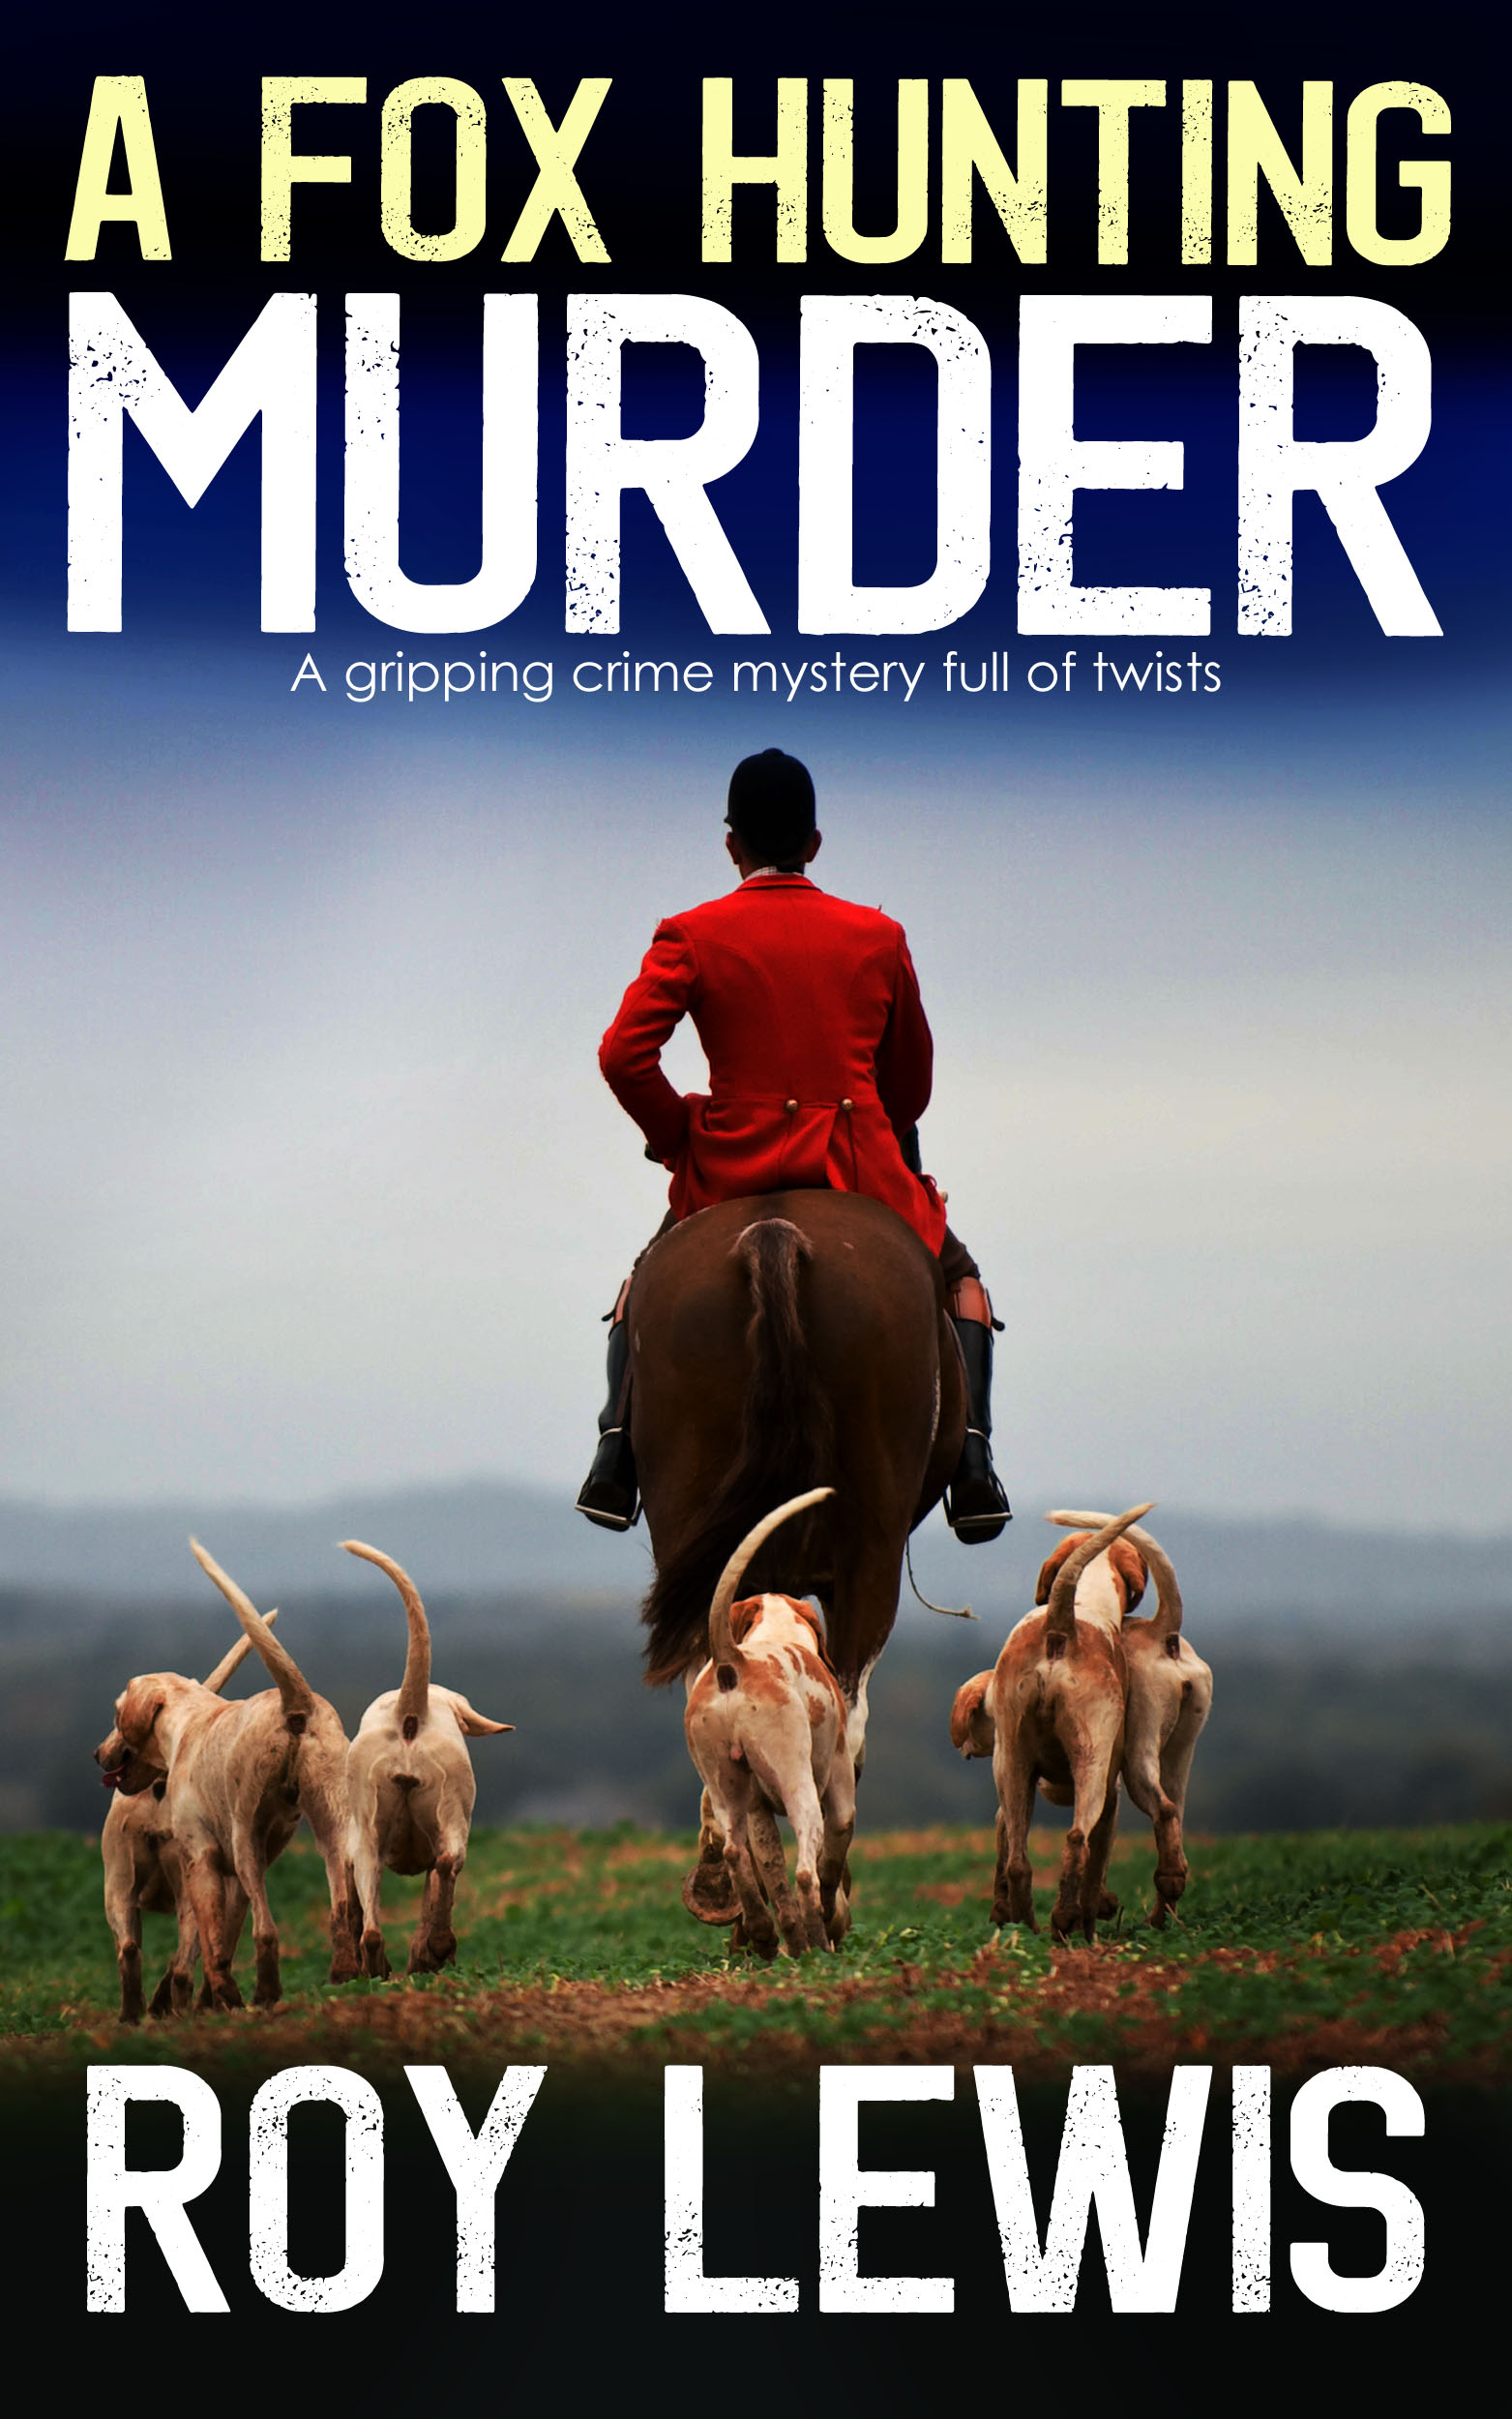 A Fox Hunt Murder.jpg